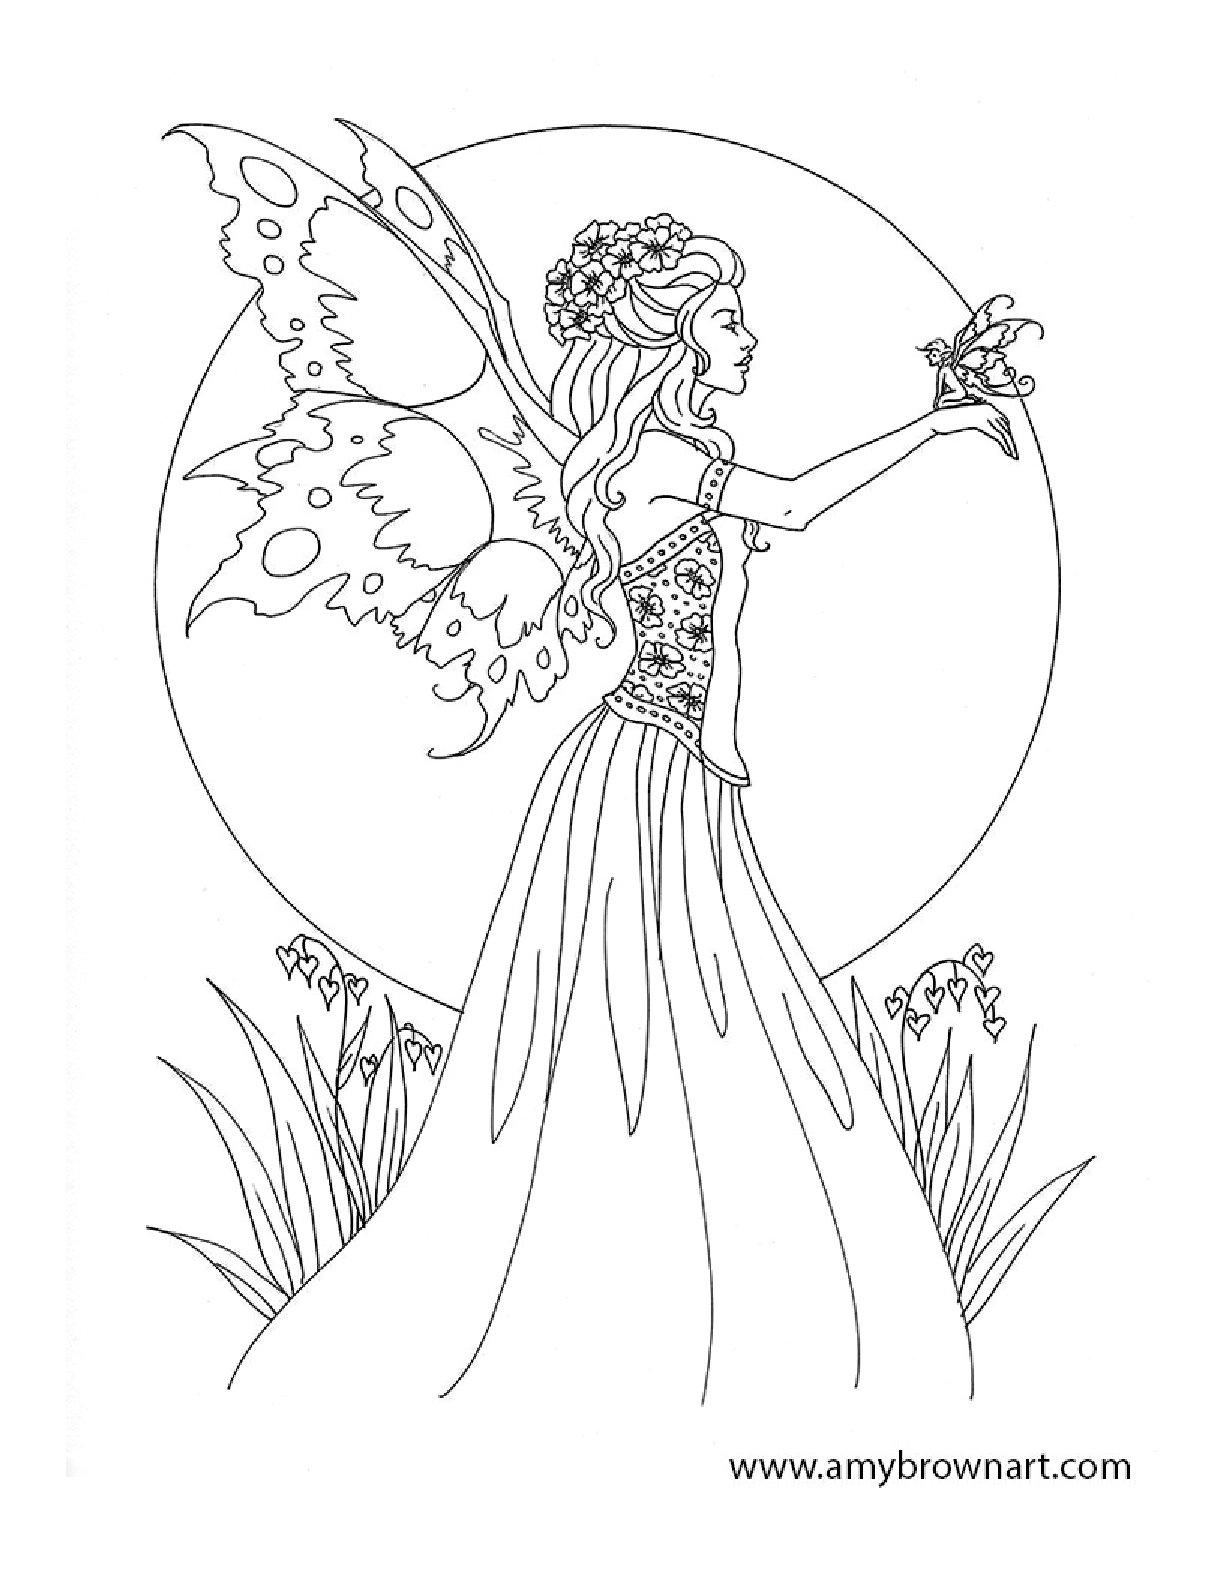 Ausmalbilder Für Erwachsene Meerjungfrau : Free Amy Brown Fairy Coloring Pages Fairie Coloring Pages